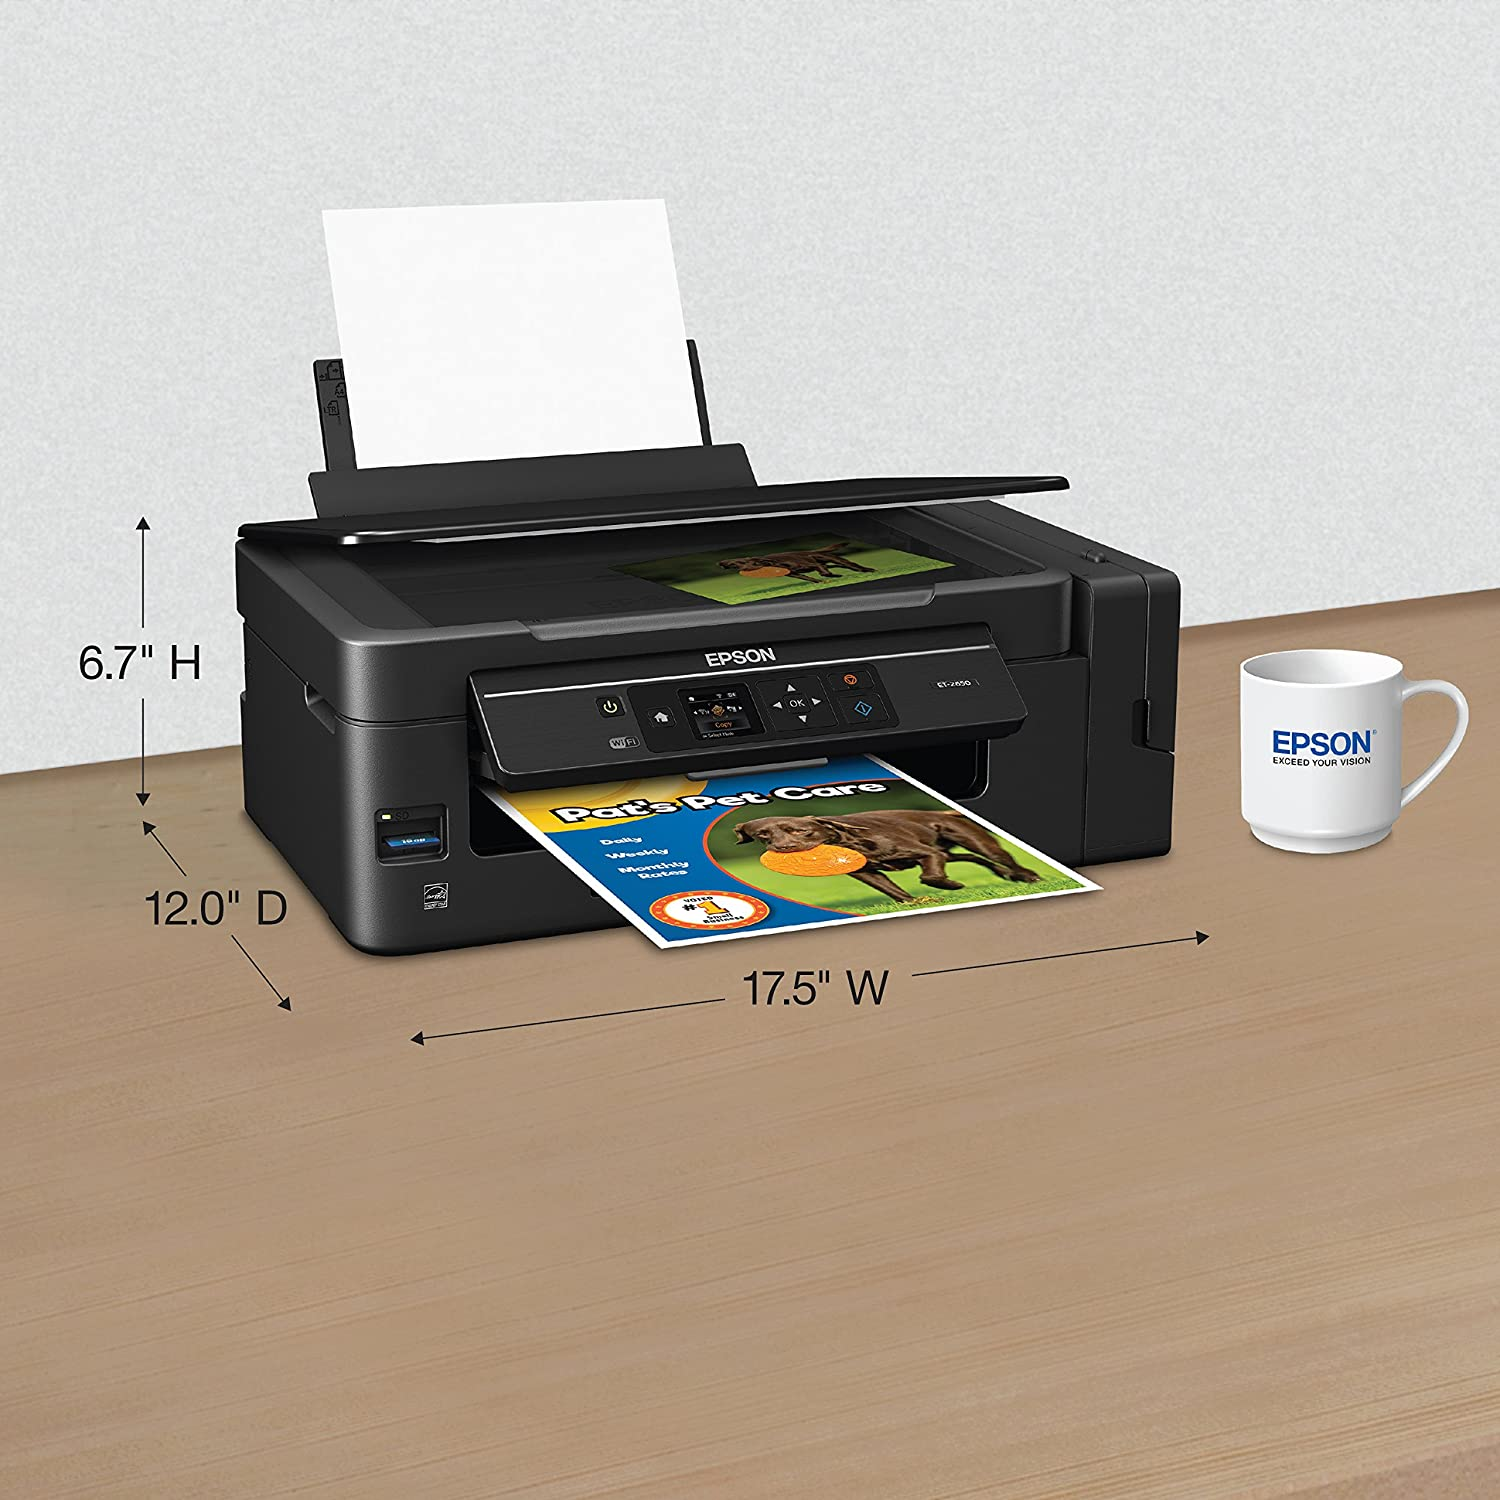 Amazon.com: Epson Expression ET-2650 EcoTank Wireless Color All-in-One  Small Business Supertank Printer with Scanner and Copier: Electronics